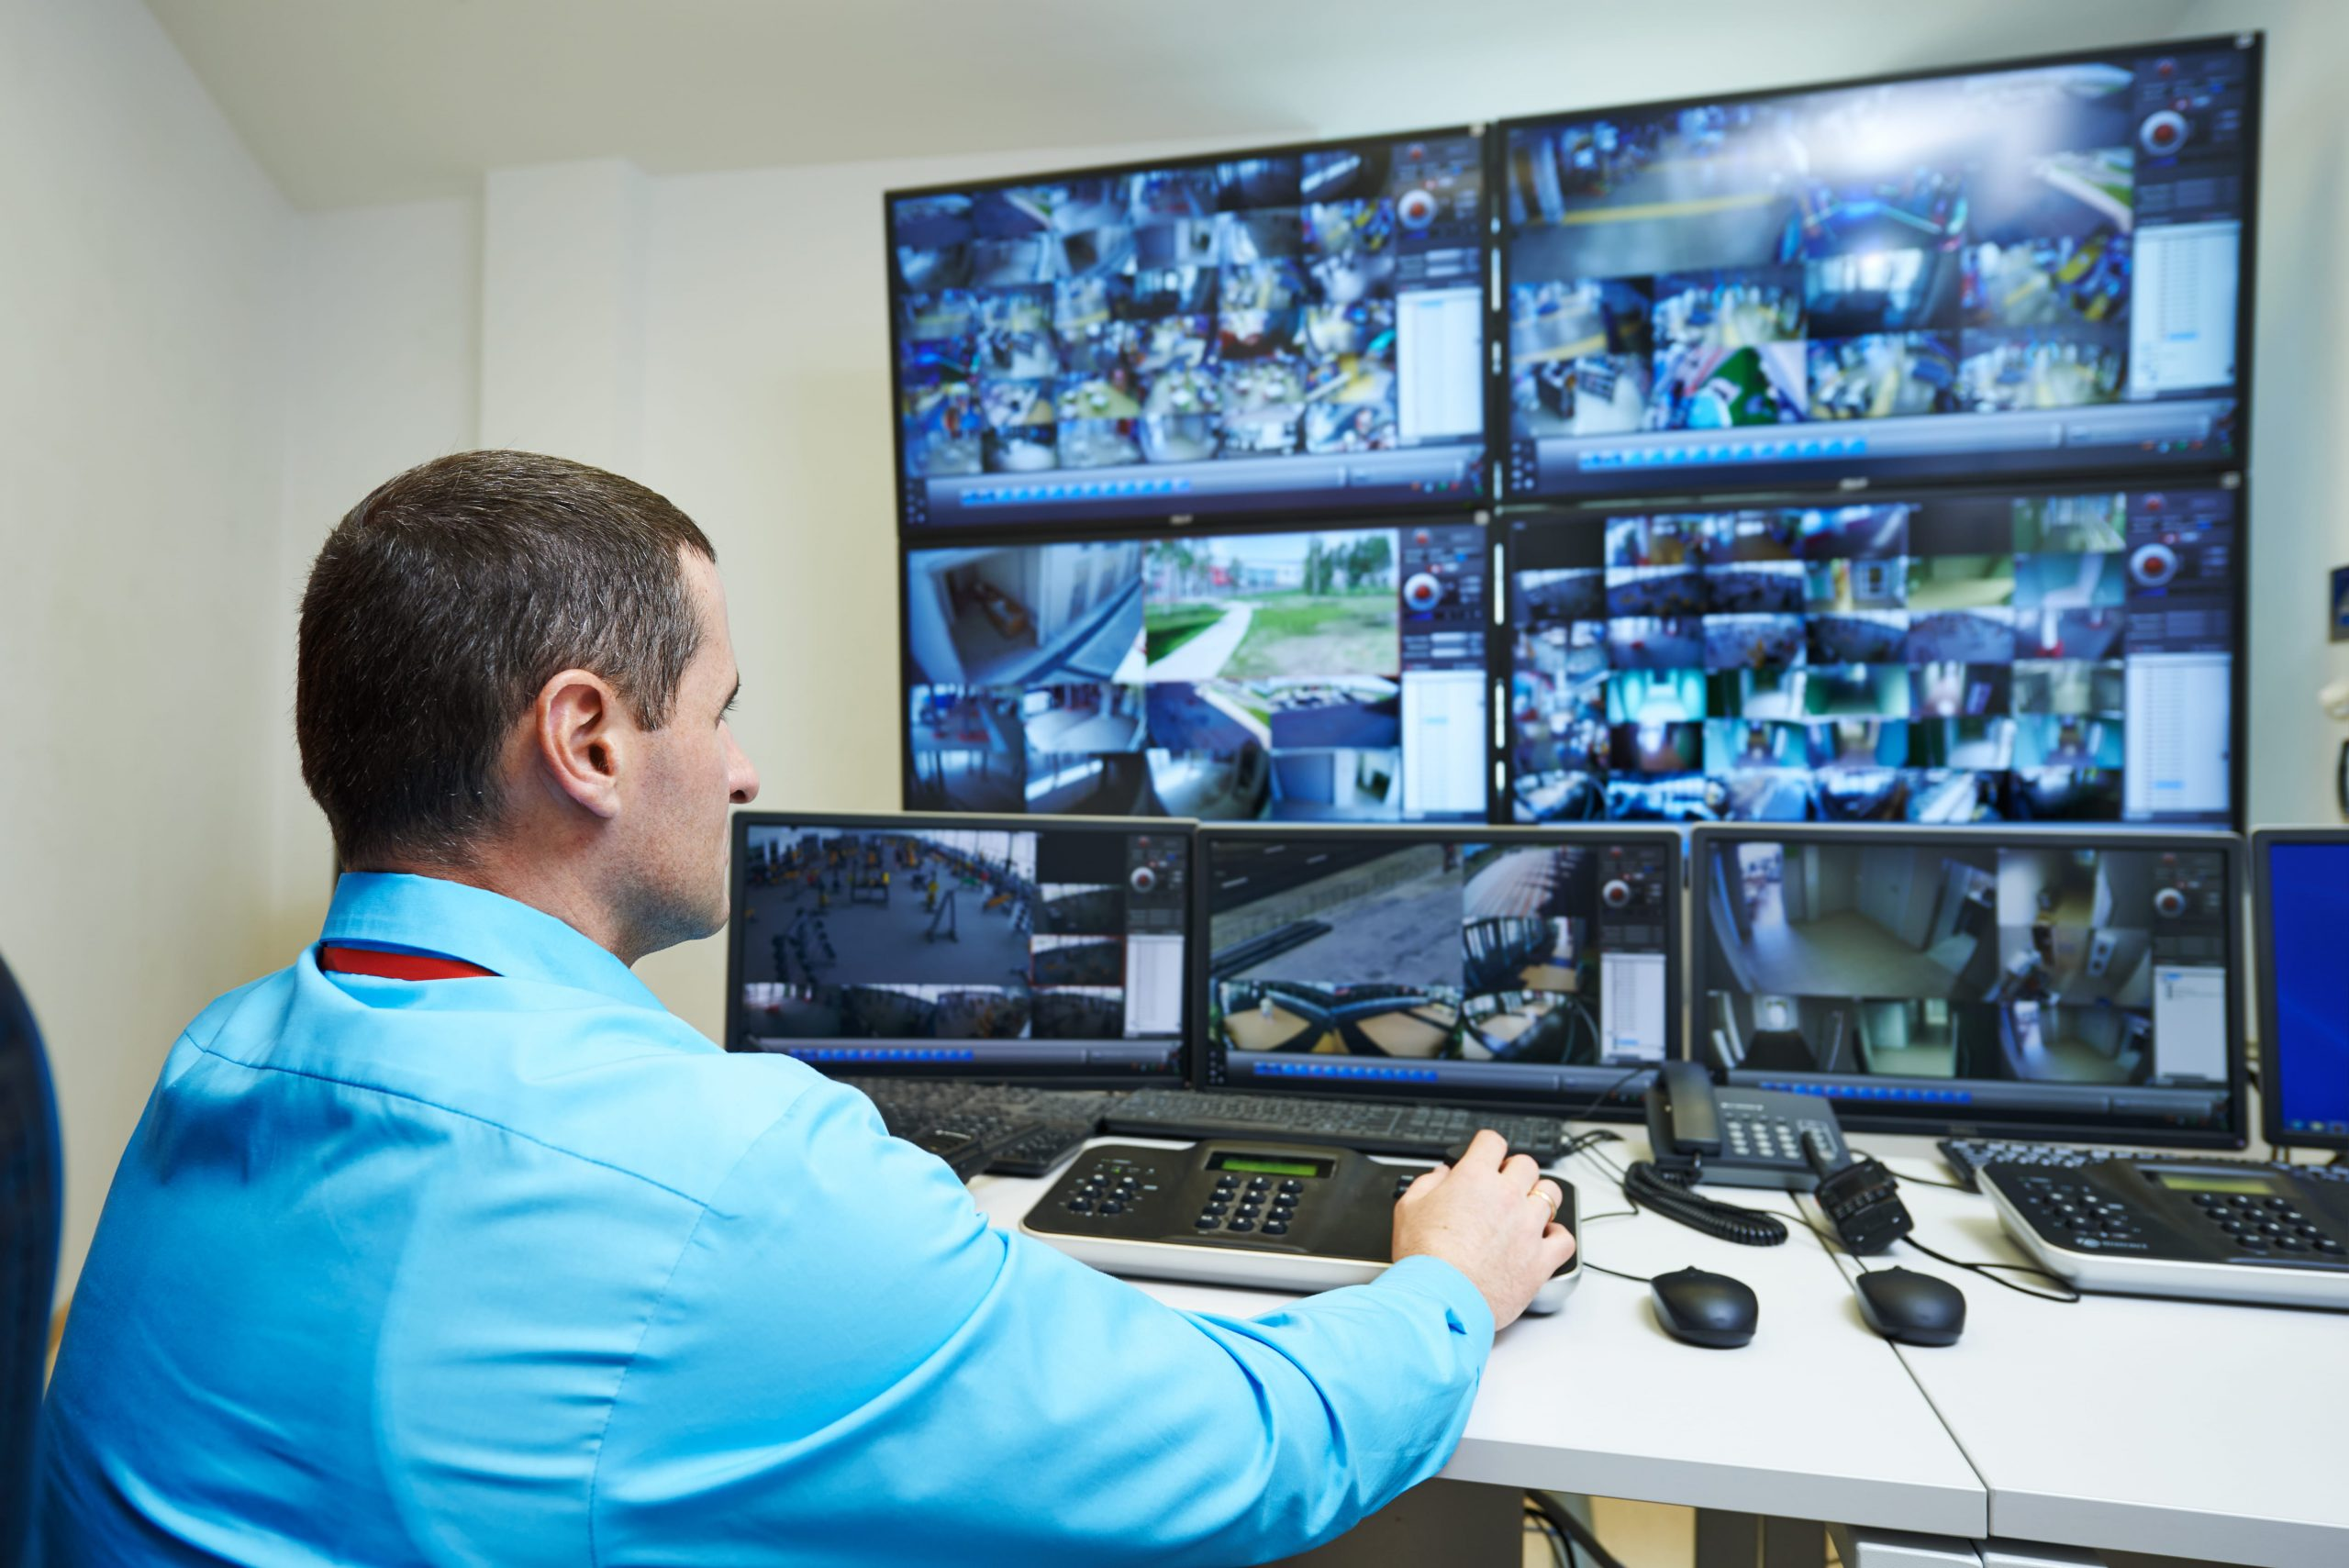 Security Mobile and internet coverage solution Carlton Rising Connection